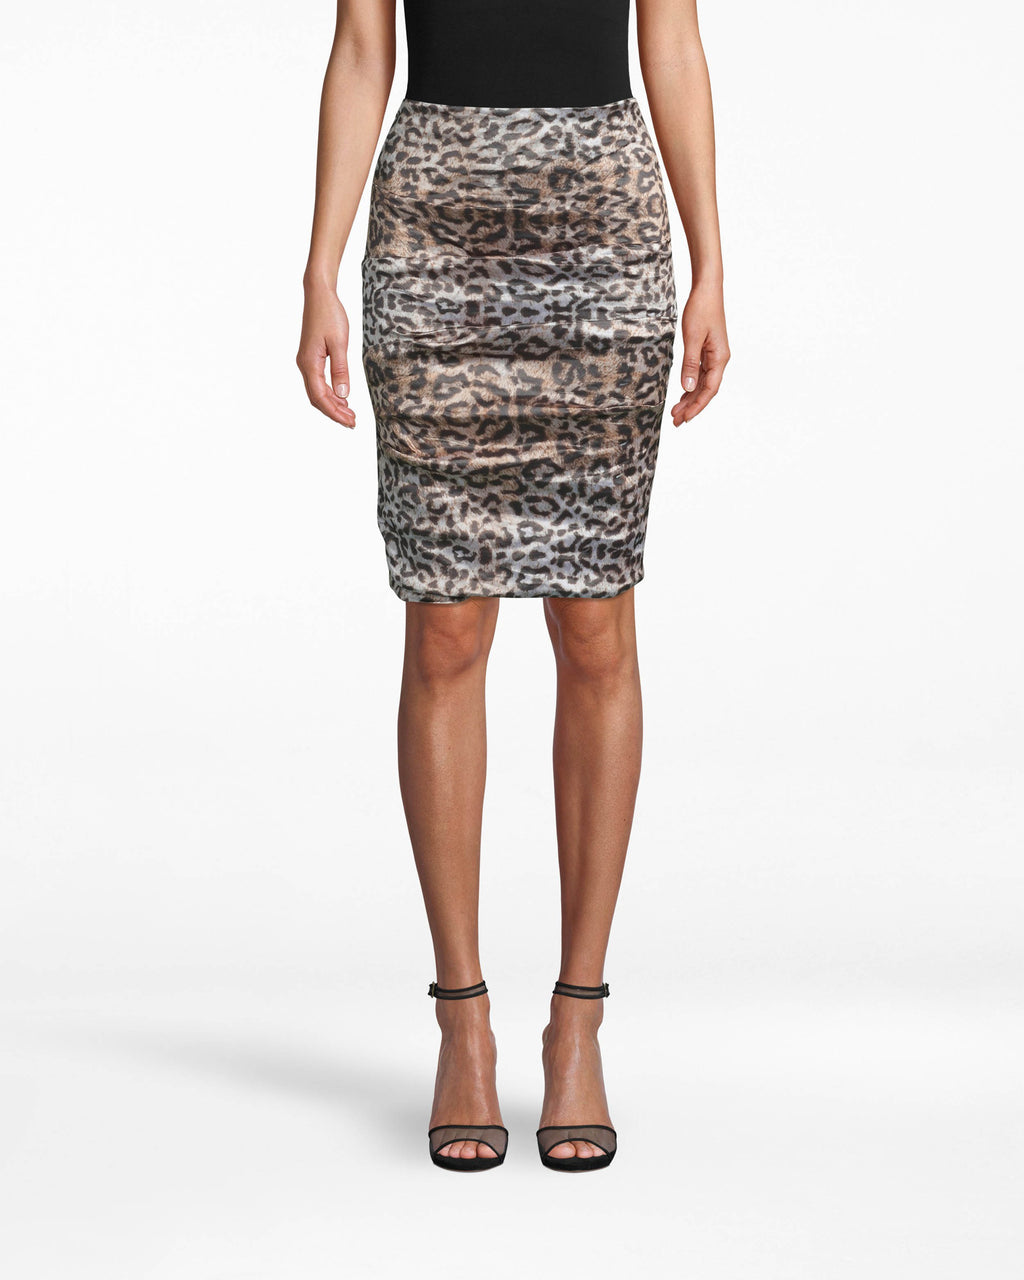 BH20052 - NYC LEOPARD TECHNO METAL SANDY SKIRT - bottoms - skirts - Have plans, get this dress. The sweetheart neckline on this sleeveless dress is a cute contrast to the to the striking leopard body. Wear with black heels - keep accessorizing simple. Exposed back zipper for closure.